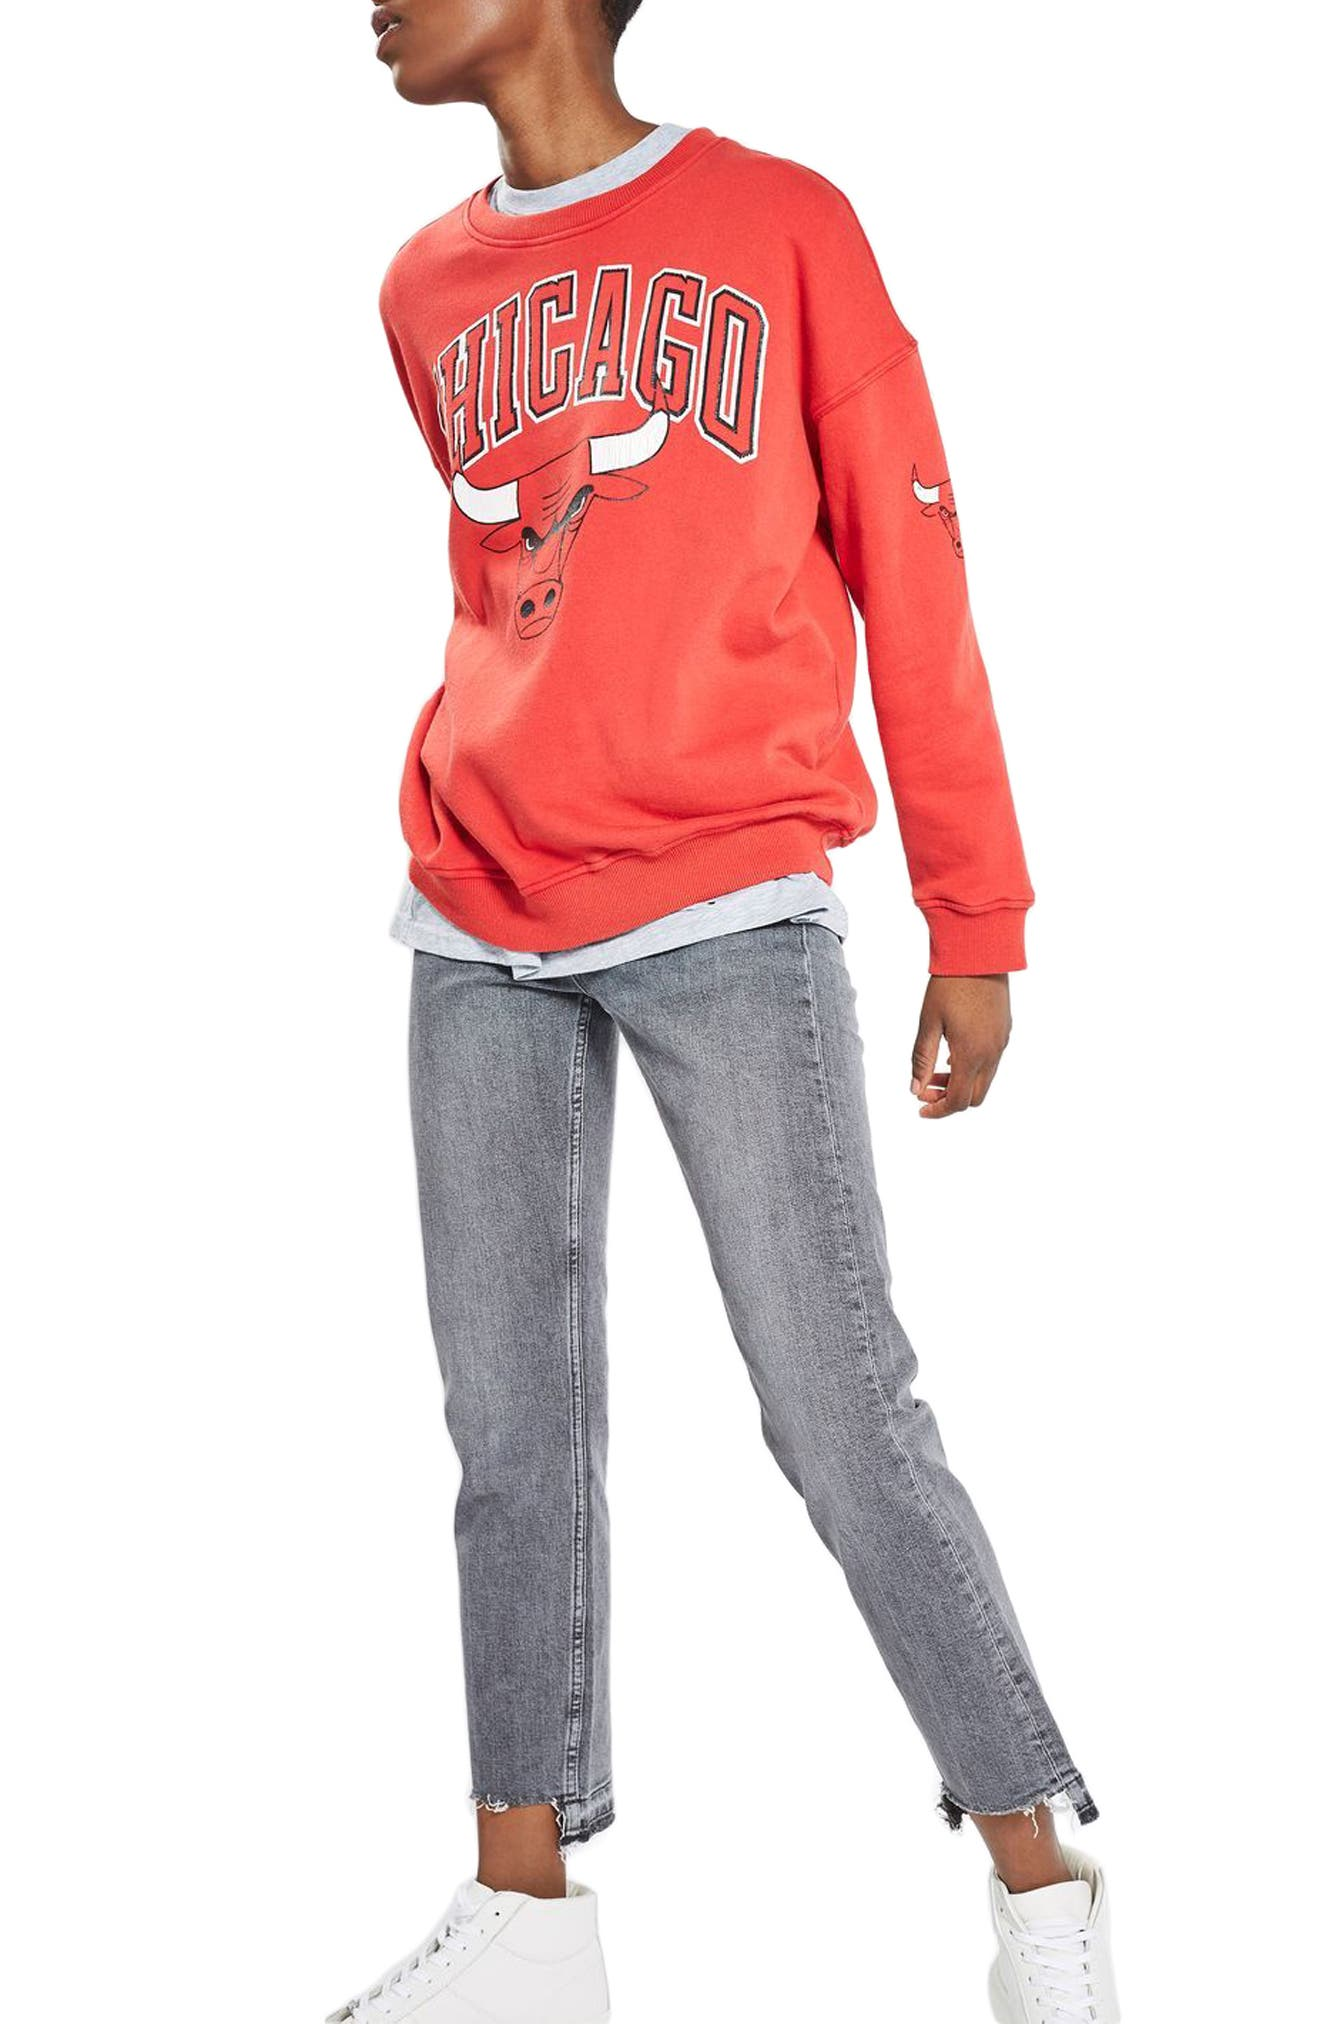 TOPSHOP by UNK Chicago Bulls Sweatshirt